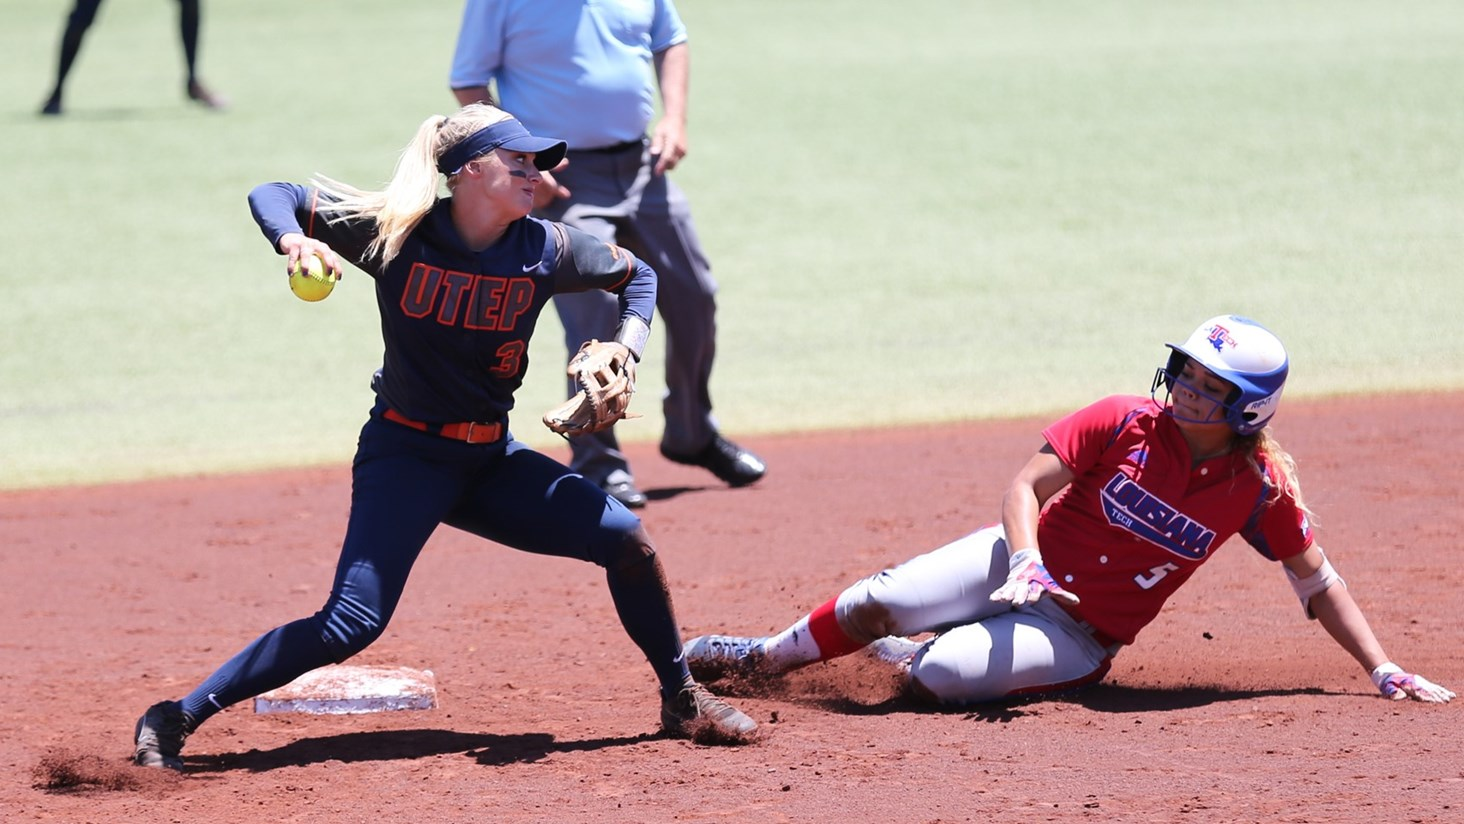 UTEP Softball's Clayton Named NFCA All-Region South